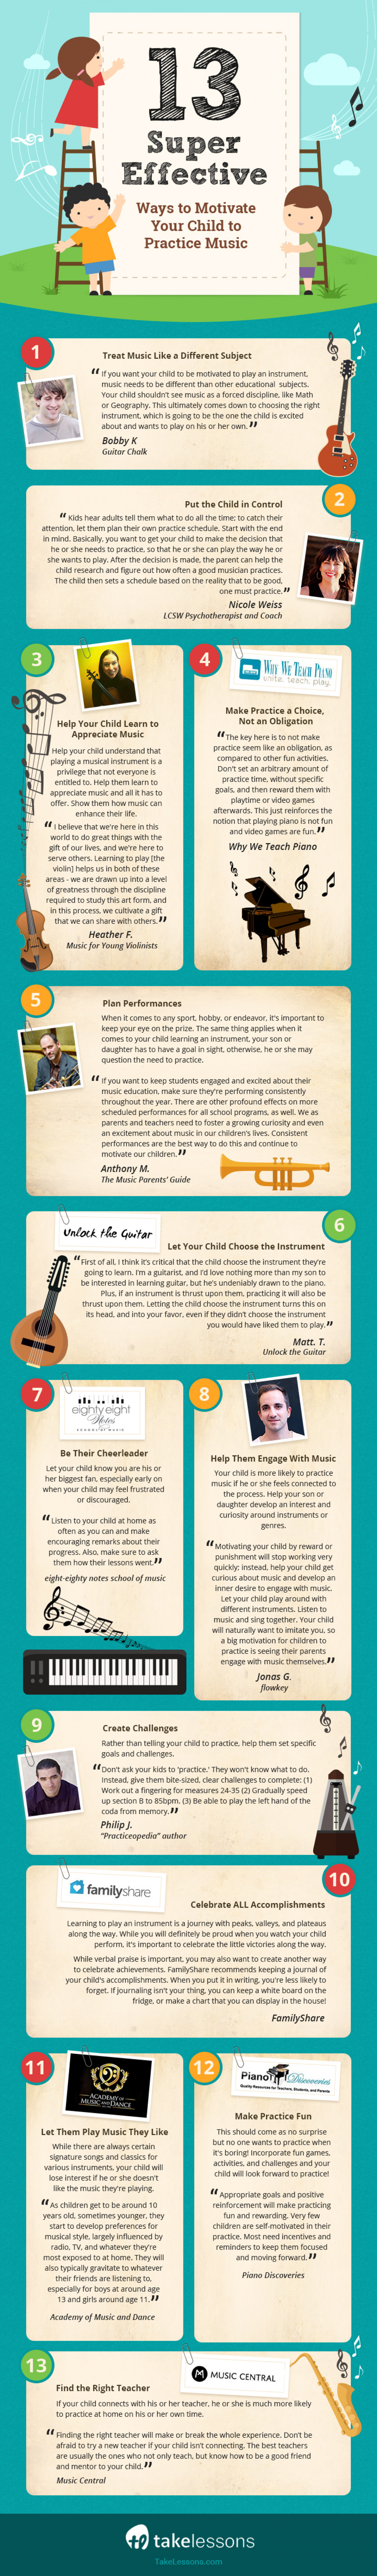 13 Super Effective Ways to Motivate Your Child to Practice Music Infographic